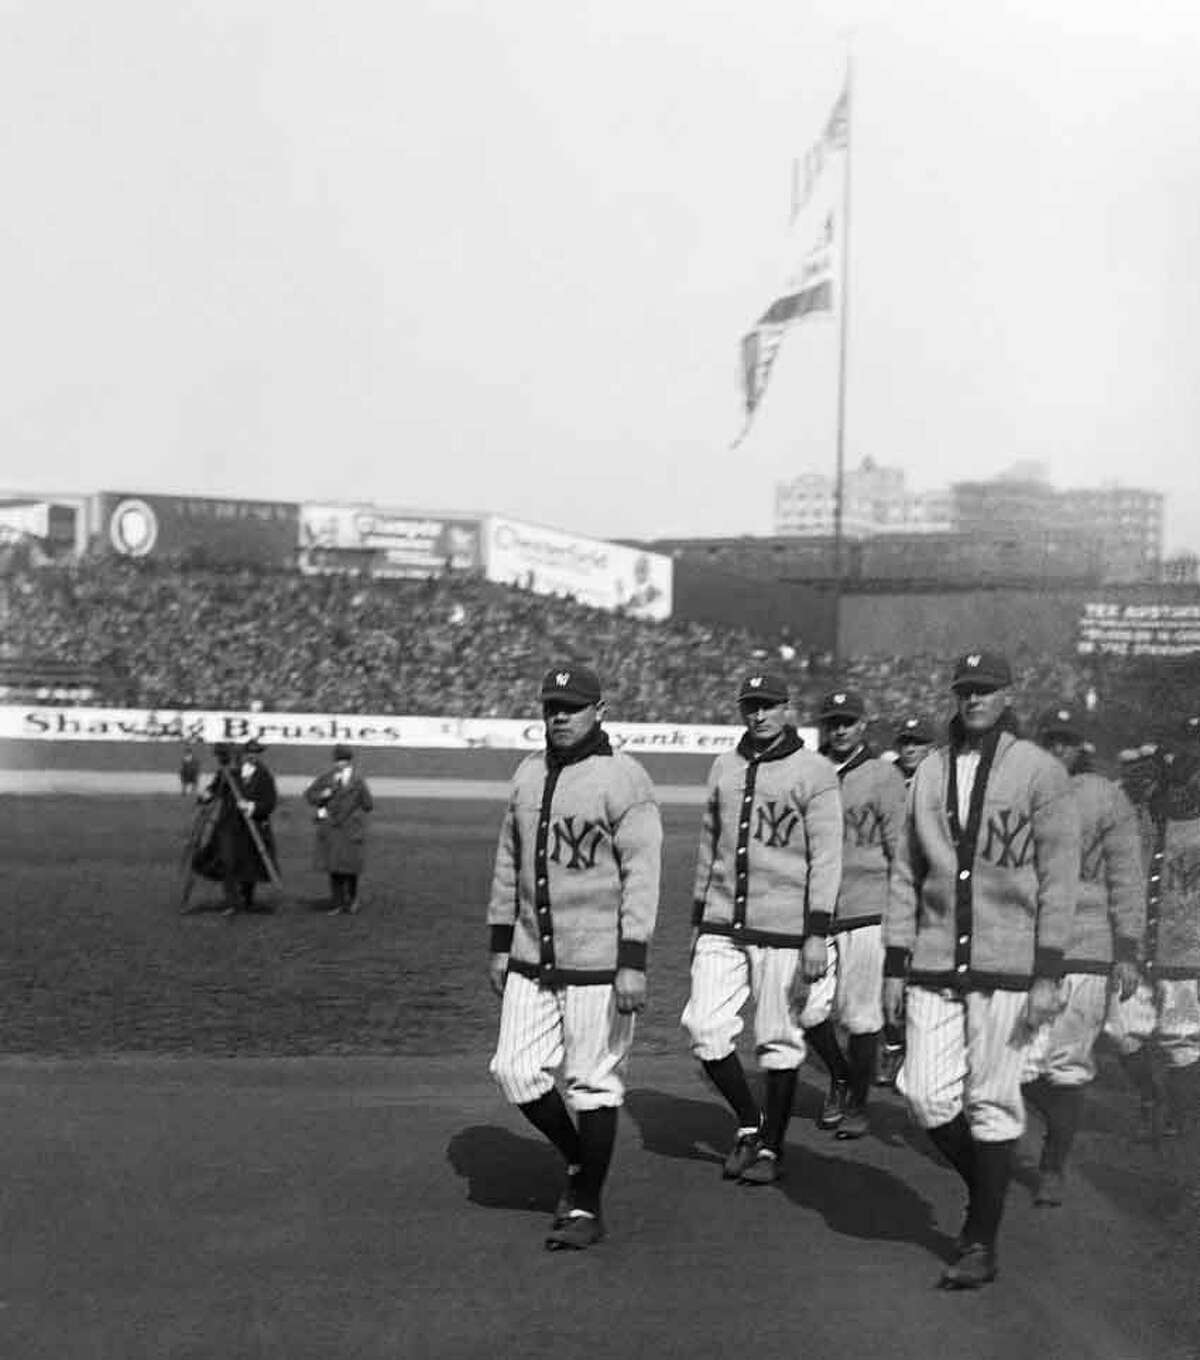 Babe Ruth, left, leads the New York Yankees onto the field for their first game at Yankee Stadium, April 18, 1923. Appropriately, the Bambino christened the stadium with its first home run as the Yankees beat the Boston Red Sox 4-1. It's no secret that Yankee Stadium's dimensions suited Ruth's left-handed power. As generations of lefties would do after him, the Babe took full advantage of the short right field poweralley and foul line. The right field foul pole stood just 295 feet from home plate. The left field pole was even shorter at 281 feet, but the bulging expanse of leftcenter field earned its nickname as